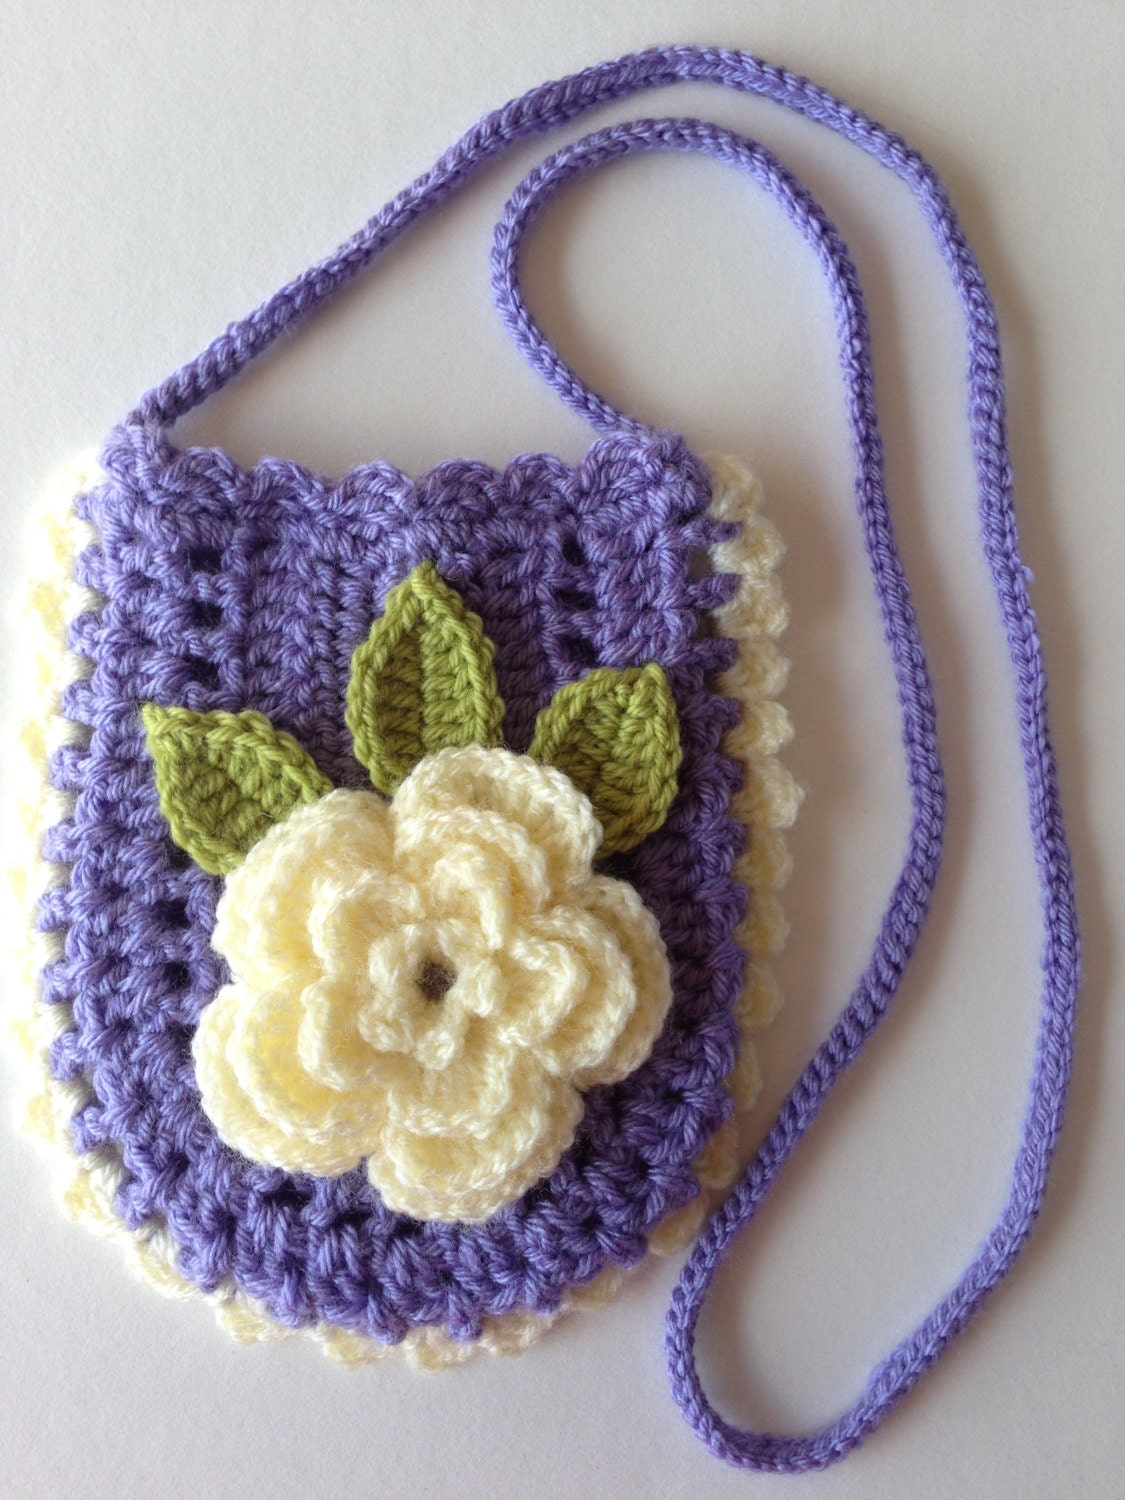 Crochet Bag For Girl : Girls Crochet Purse Peony Crochet Bag Teenagers Crochet Bag